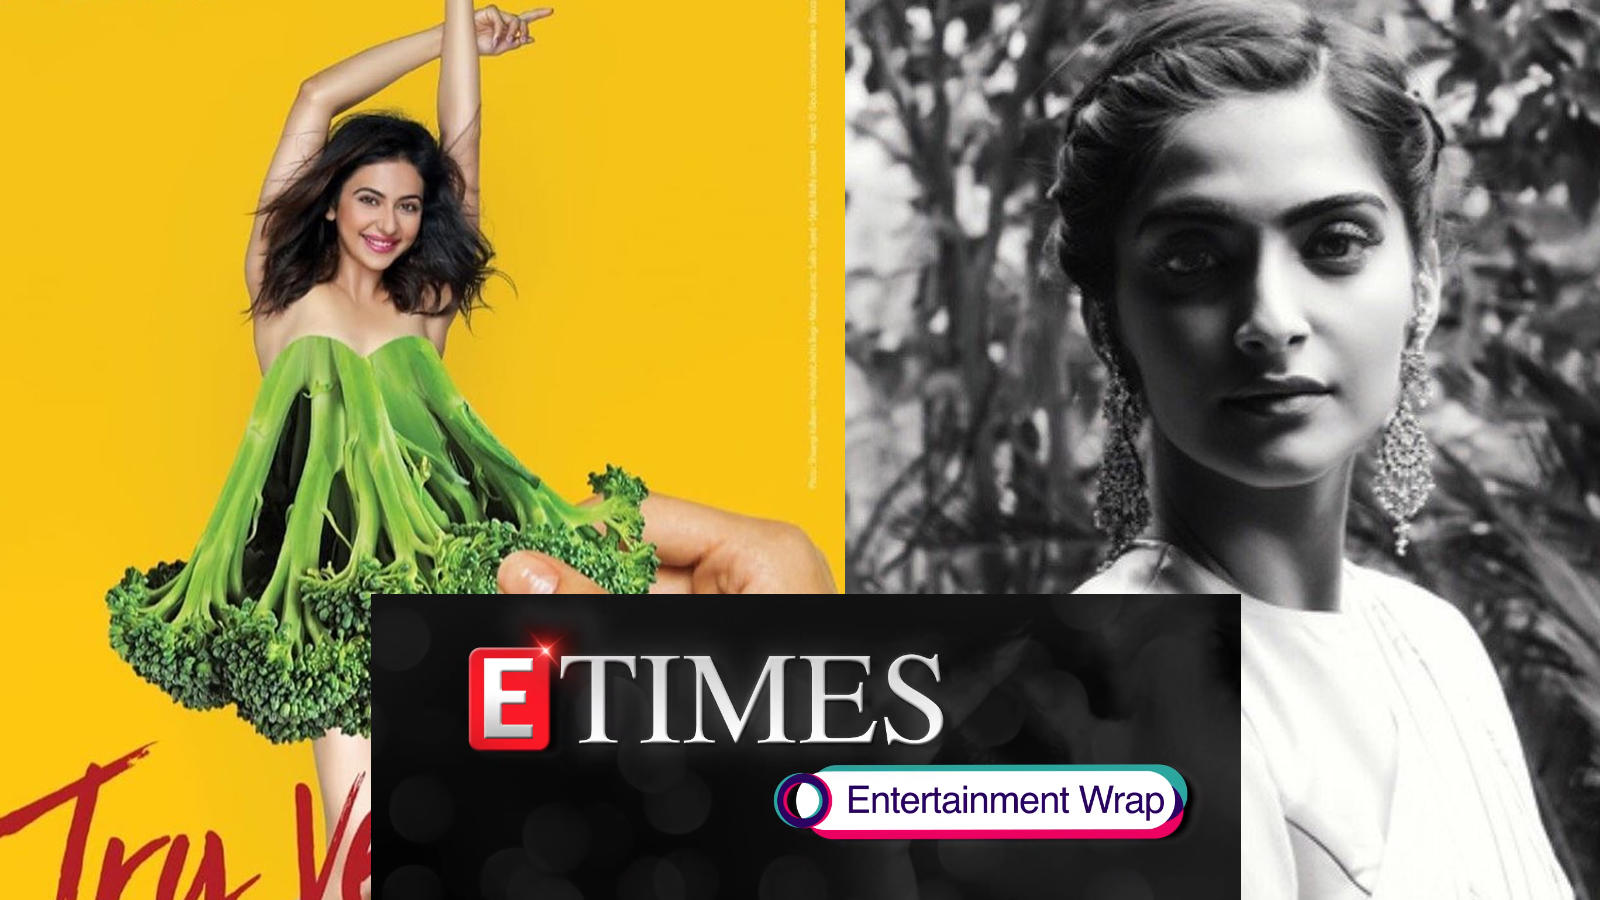 world-environment-day-rakul-preet-singh-advocates-turning-vegan-with-special-peta-photoshoot-sonam-kapoor-is-elegance-personified-in-this-black-and-white-photograph-of-hers-and-more